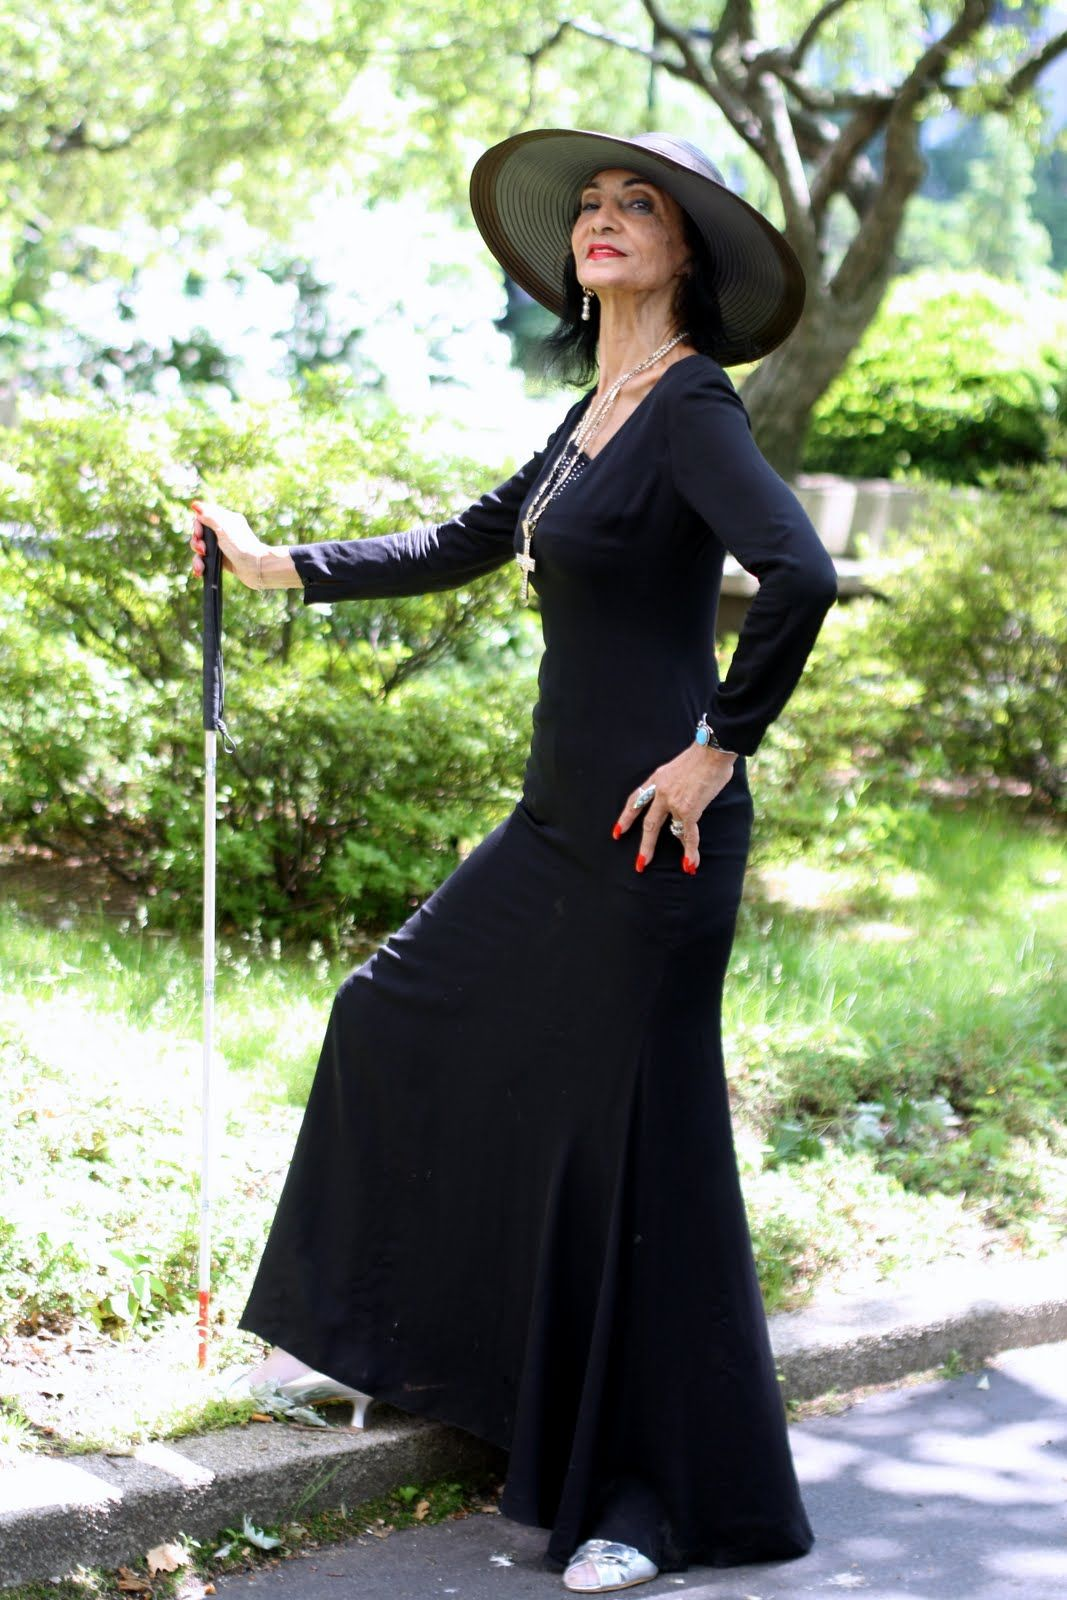 dresses for women over 70 - stylish looks | old, bold and eminently